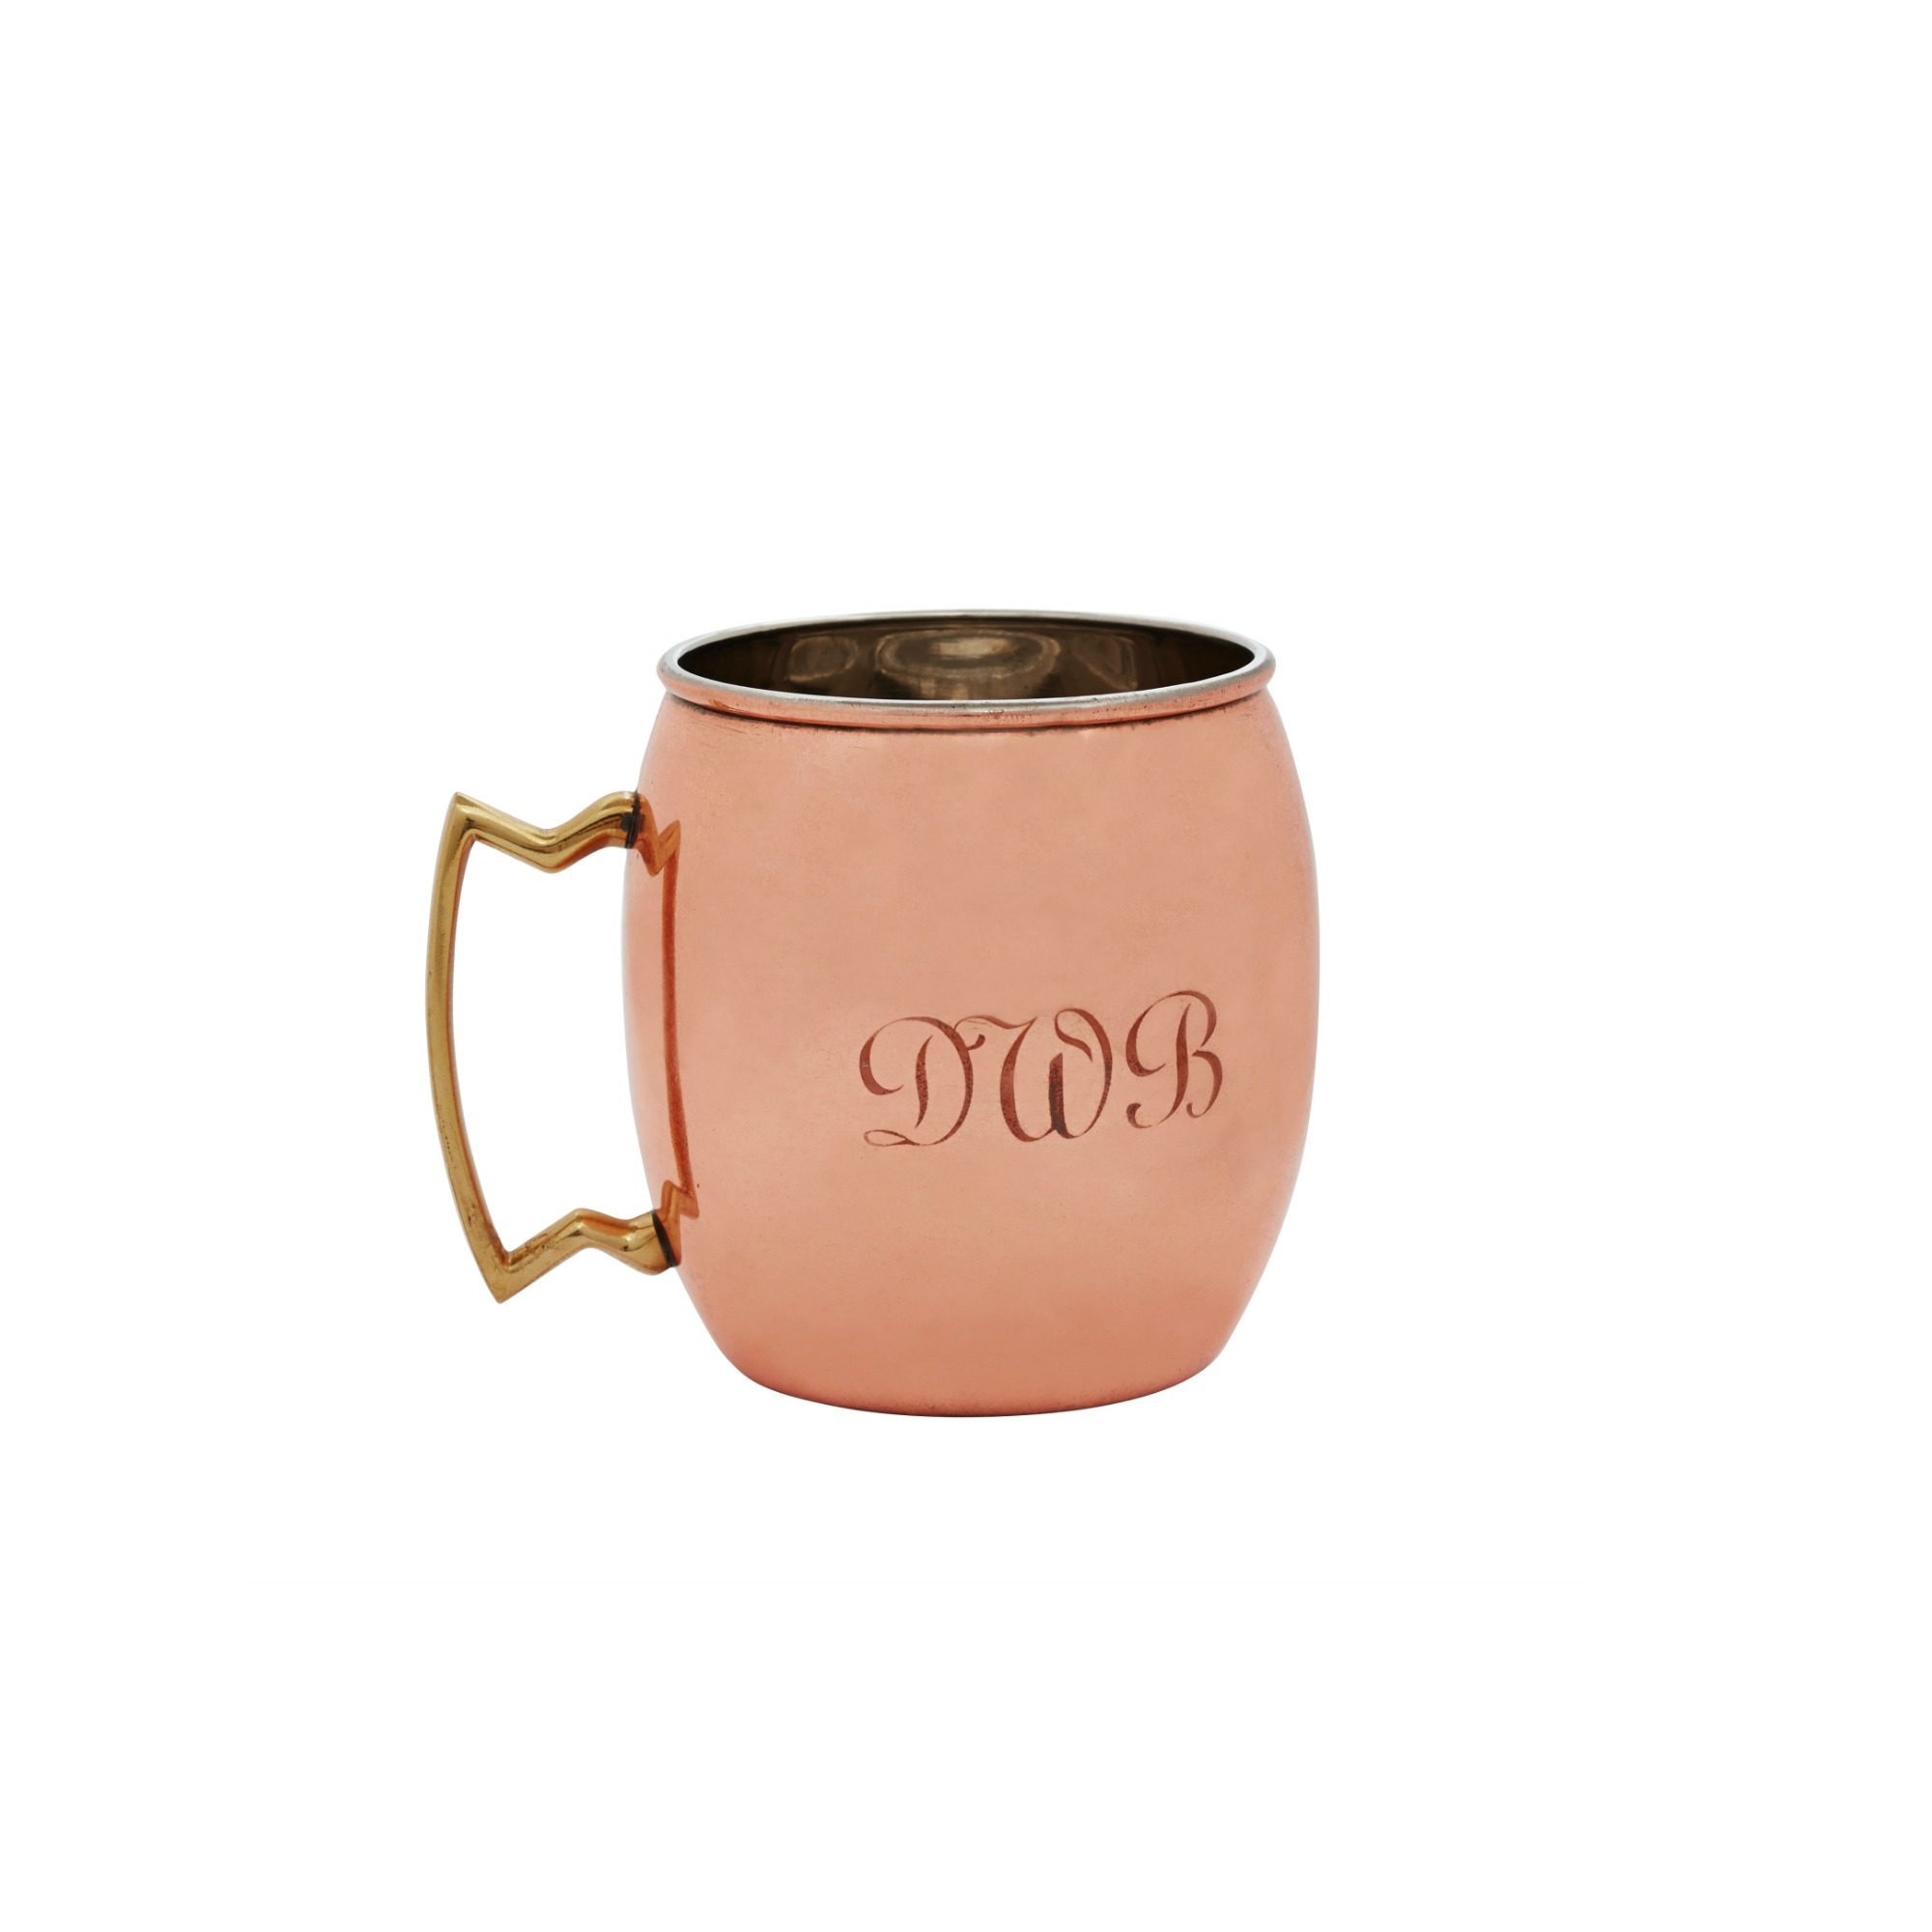 Pottery Barn Copper Moscow Mule Mug